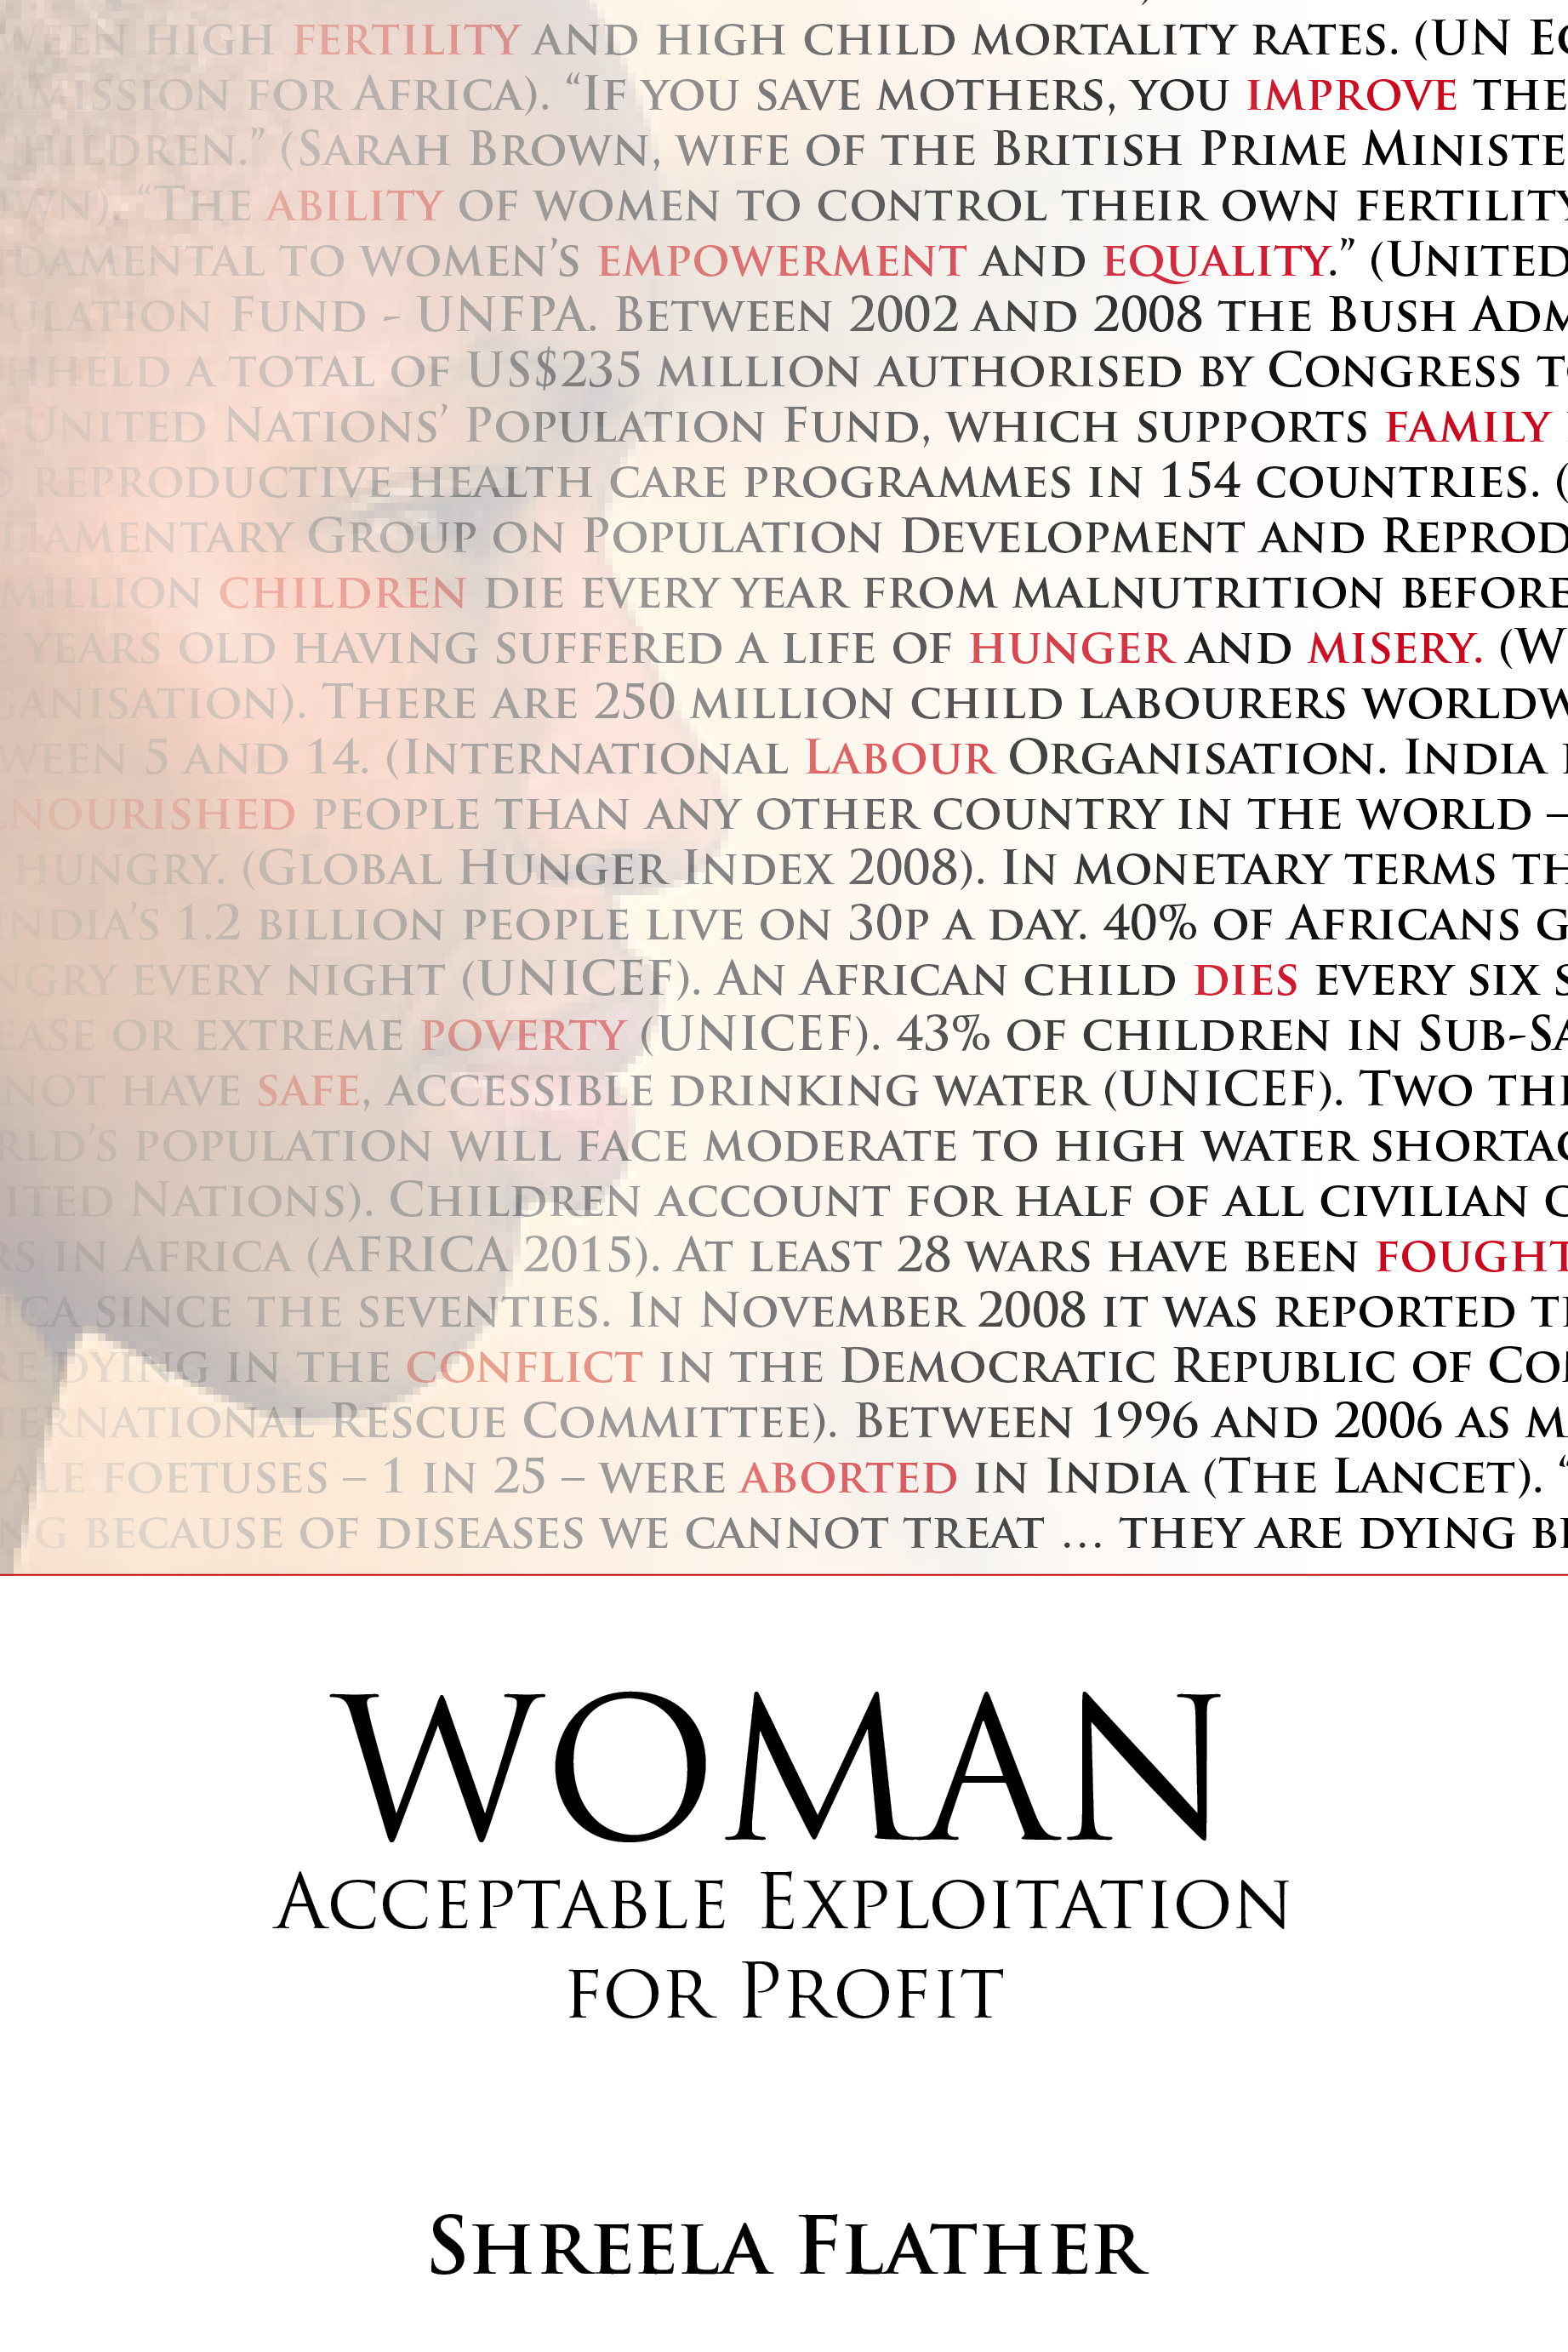 Woman: Acceptable Exploitation for Profit